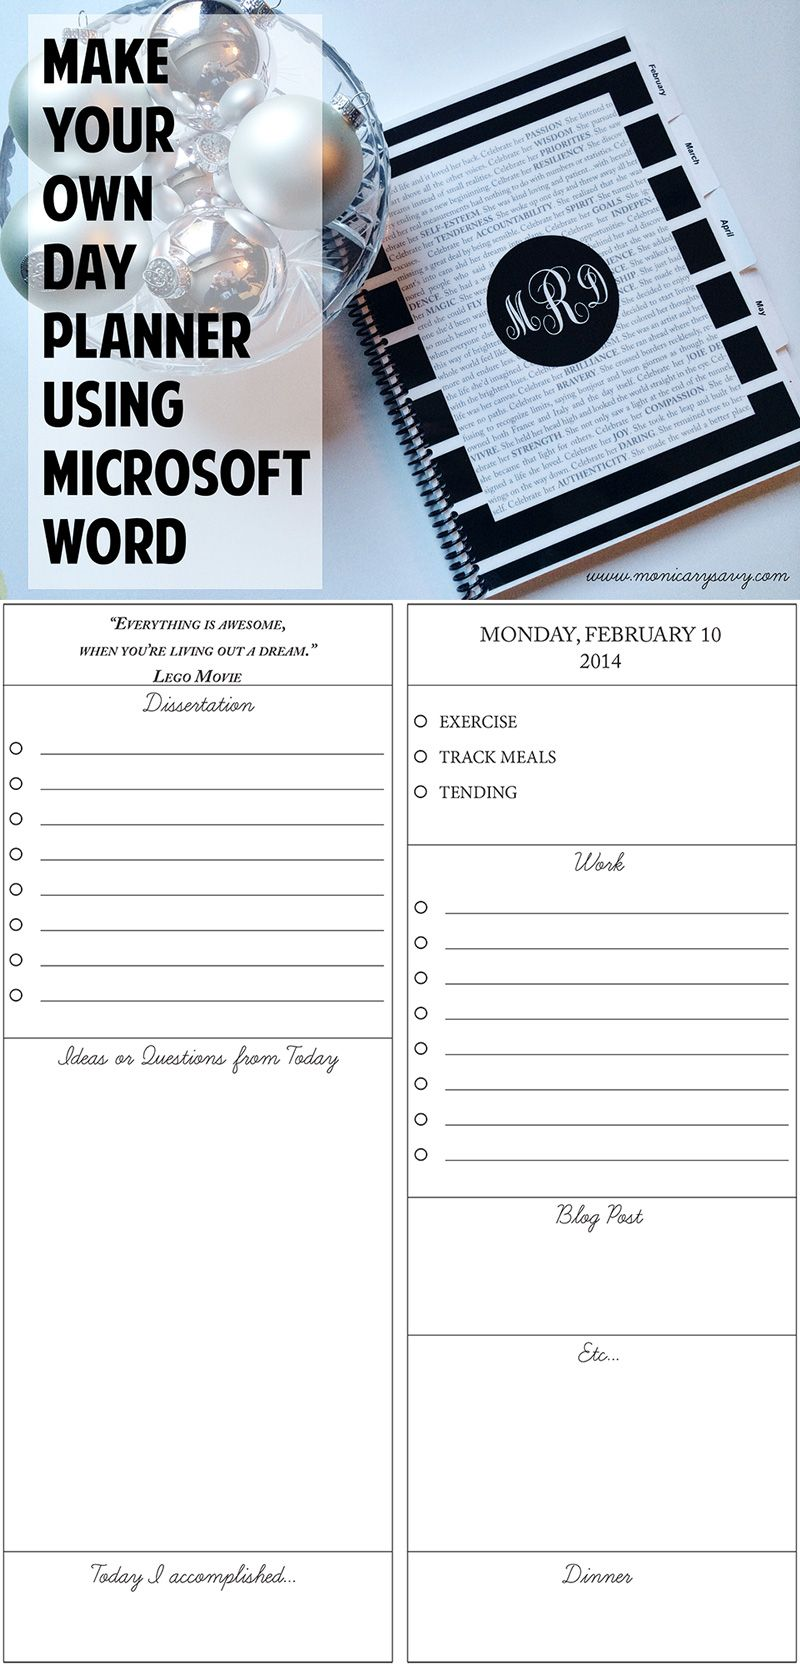 Make Your Own Day Planner Using Microsoft Word. Then Get It Printed At A  Local  Microsoft Daily Planner